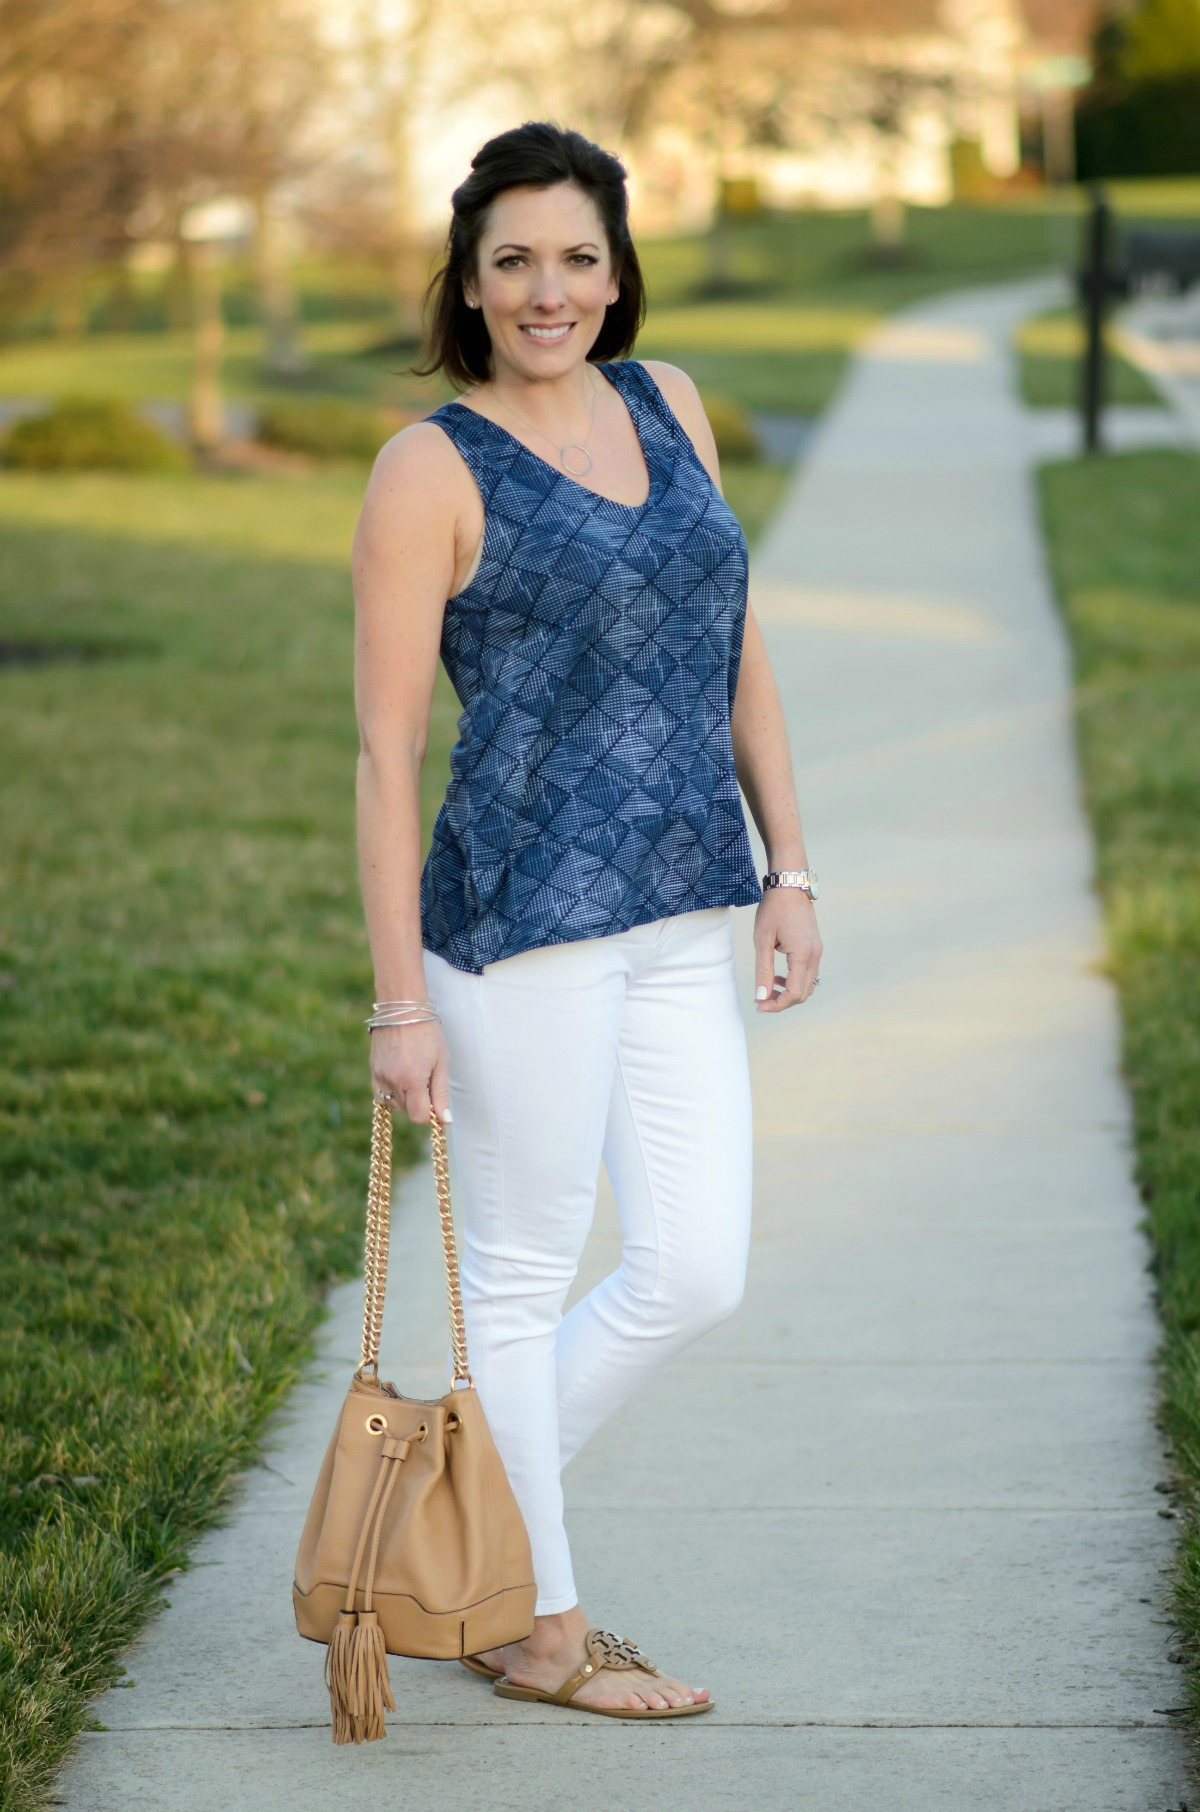 Spring fashion with this relaxed split hem printed top from Old Navy! Throw it on with white jeans and your favorite neutral sandals for an easy daytime look.